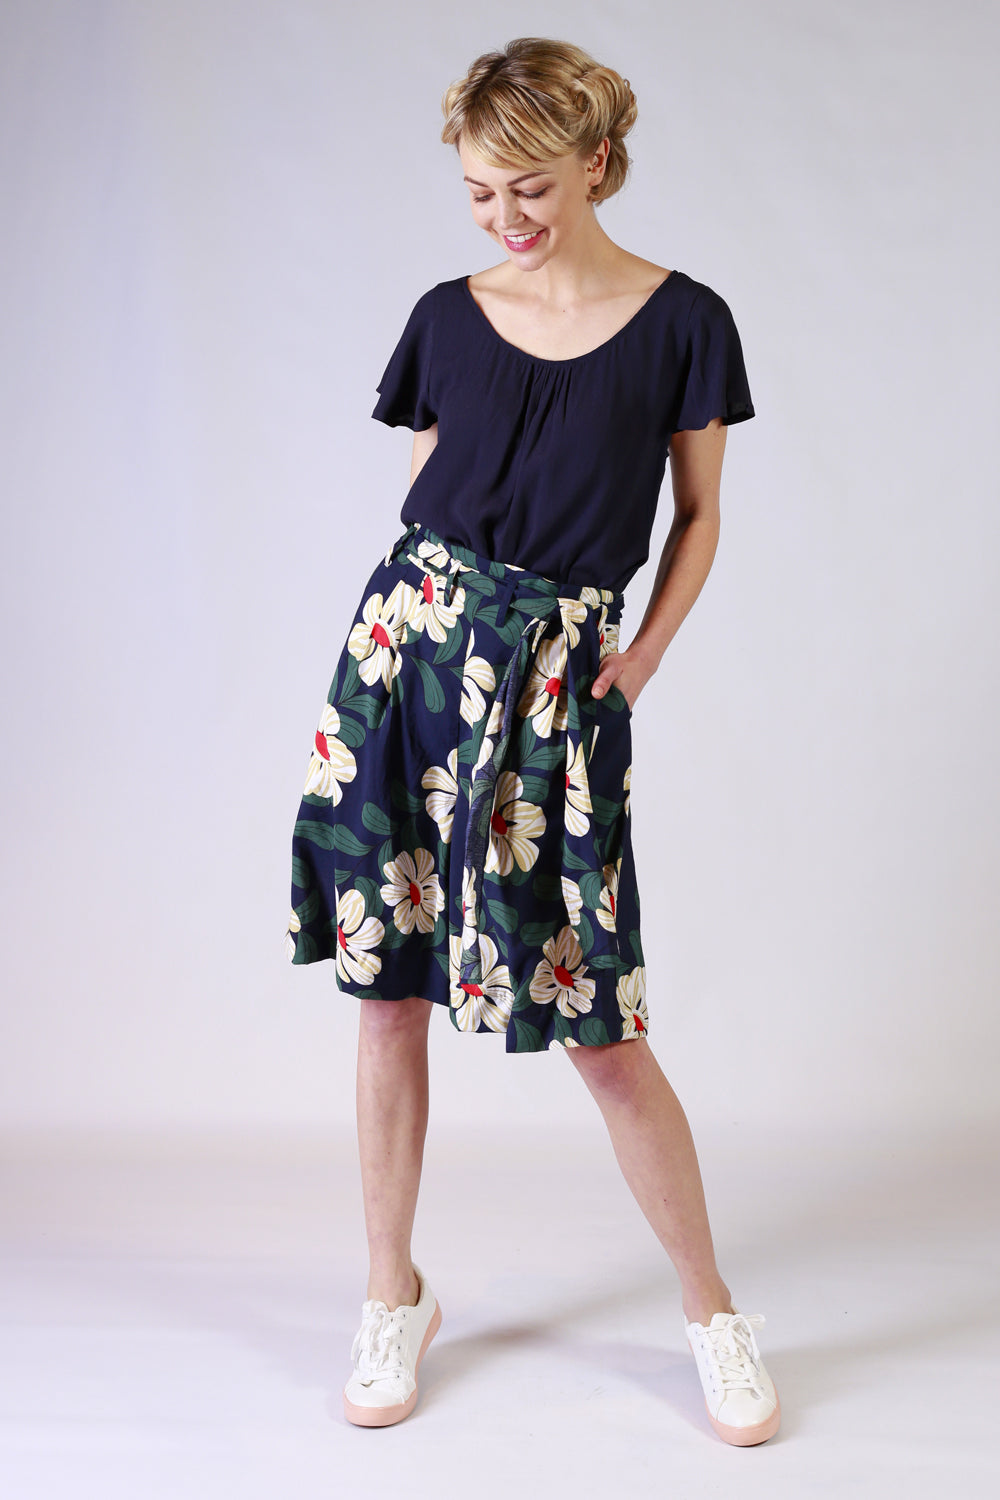 Miss Directed Pants | Annah Stretton NZ | Womens Fashion NZ | Floral Pants NZ | Wide Leg Pants / designer fashion NZ